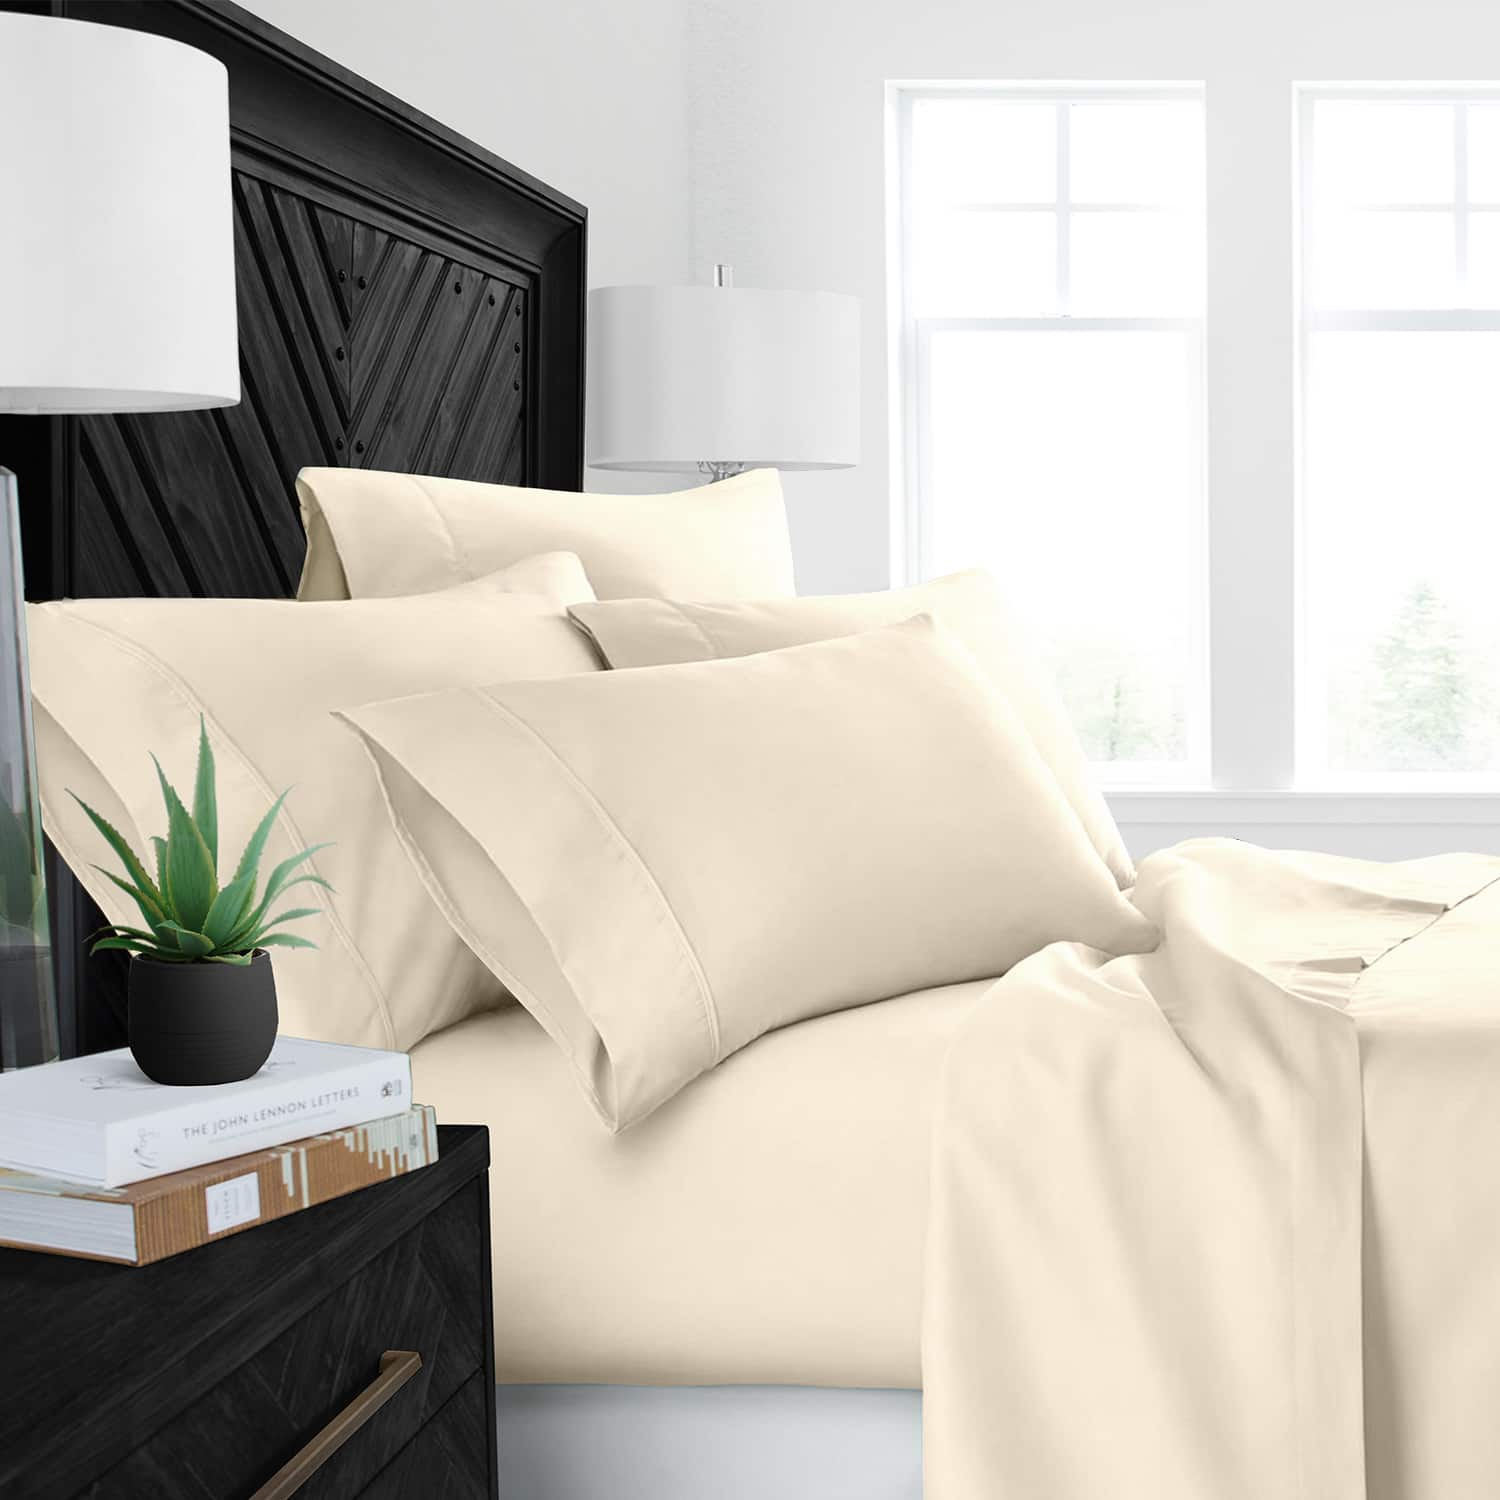 Linens & Hutch Aloe Infused Luxury 4 Piece Sheet Set (Available in 11 Colors & 5 Sizes): Starting at $20.79